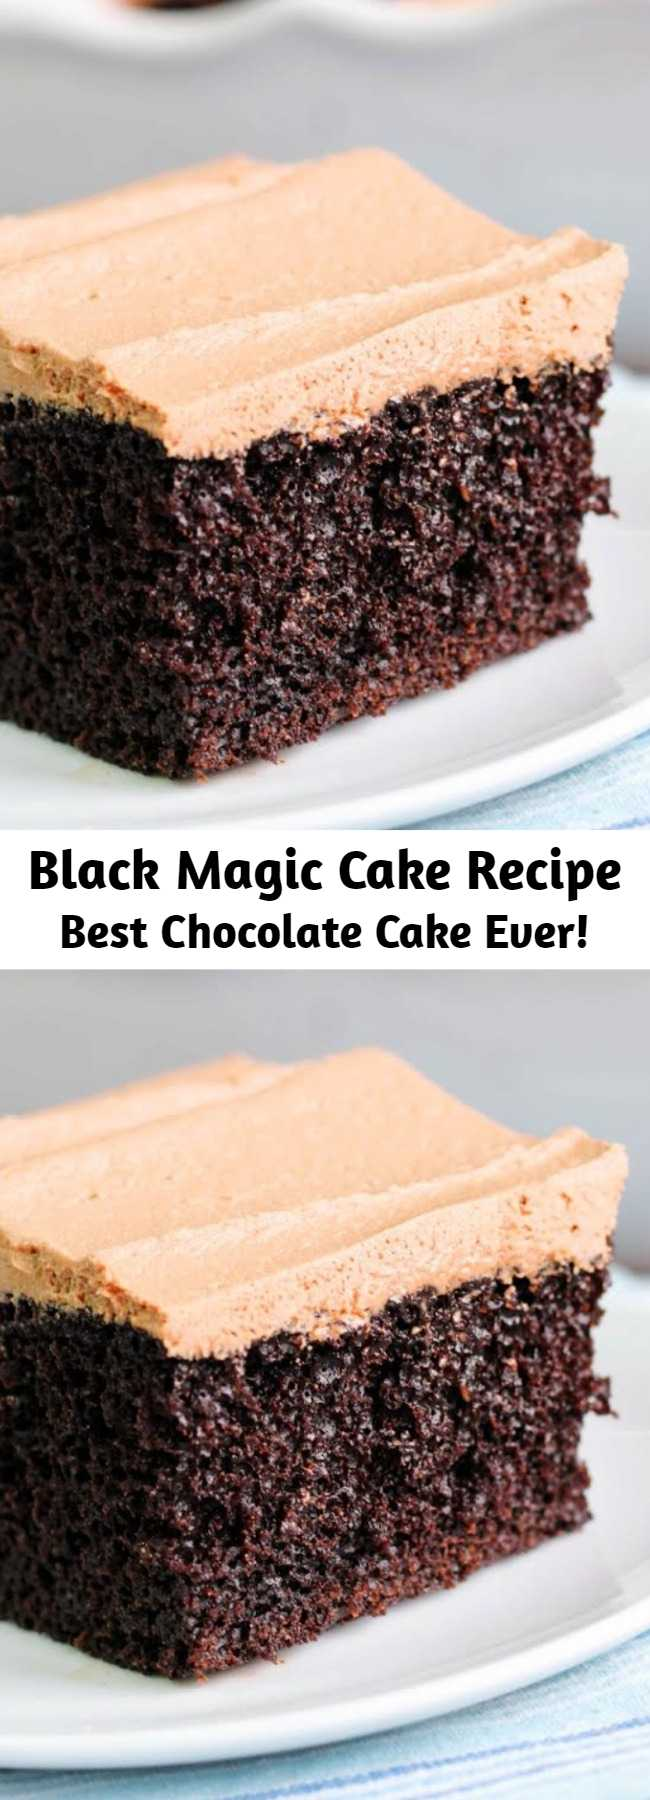 Black Magic Cake Recipe (Best Chocolate Cake Ever!) - It's a chocolate lovers dream. Simple and straightforward, this is one of those recipes that everyone will love. Coffee enhances the chocolate flavor and buttermilk helps make the cake moist. We don't use margarine often for frosting, but this chocolate one is so good it made a believer out of us. It's perfect on top of the chocolaty cake. Be sure to have plenty of milk on hand.